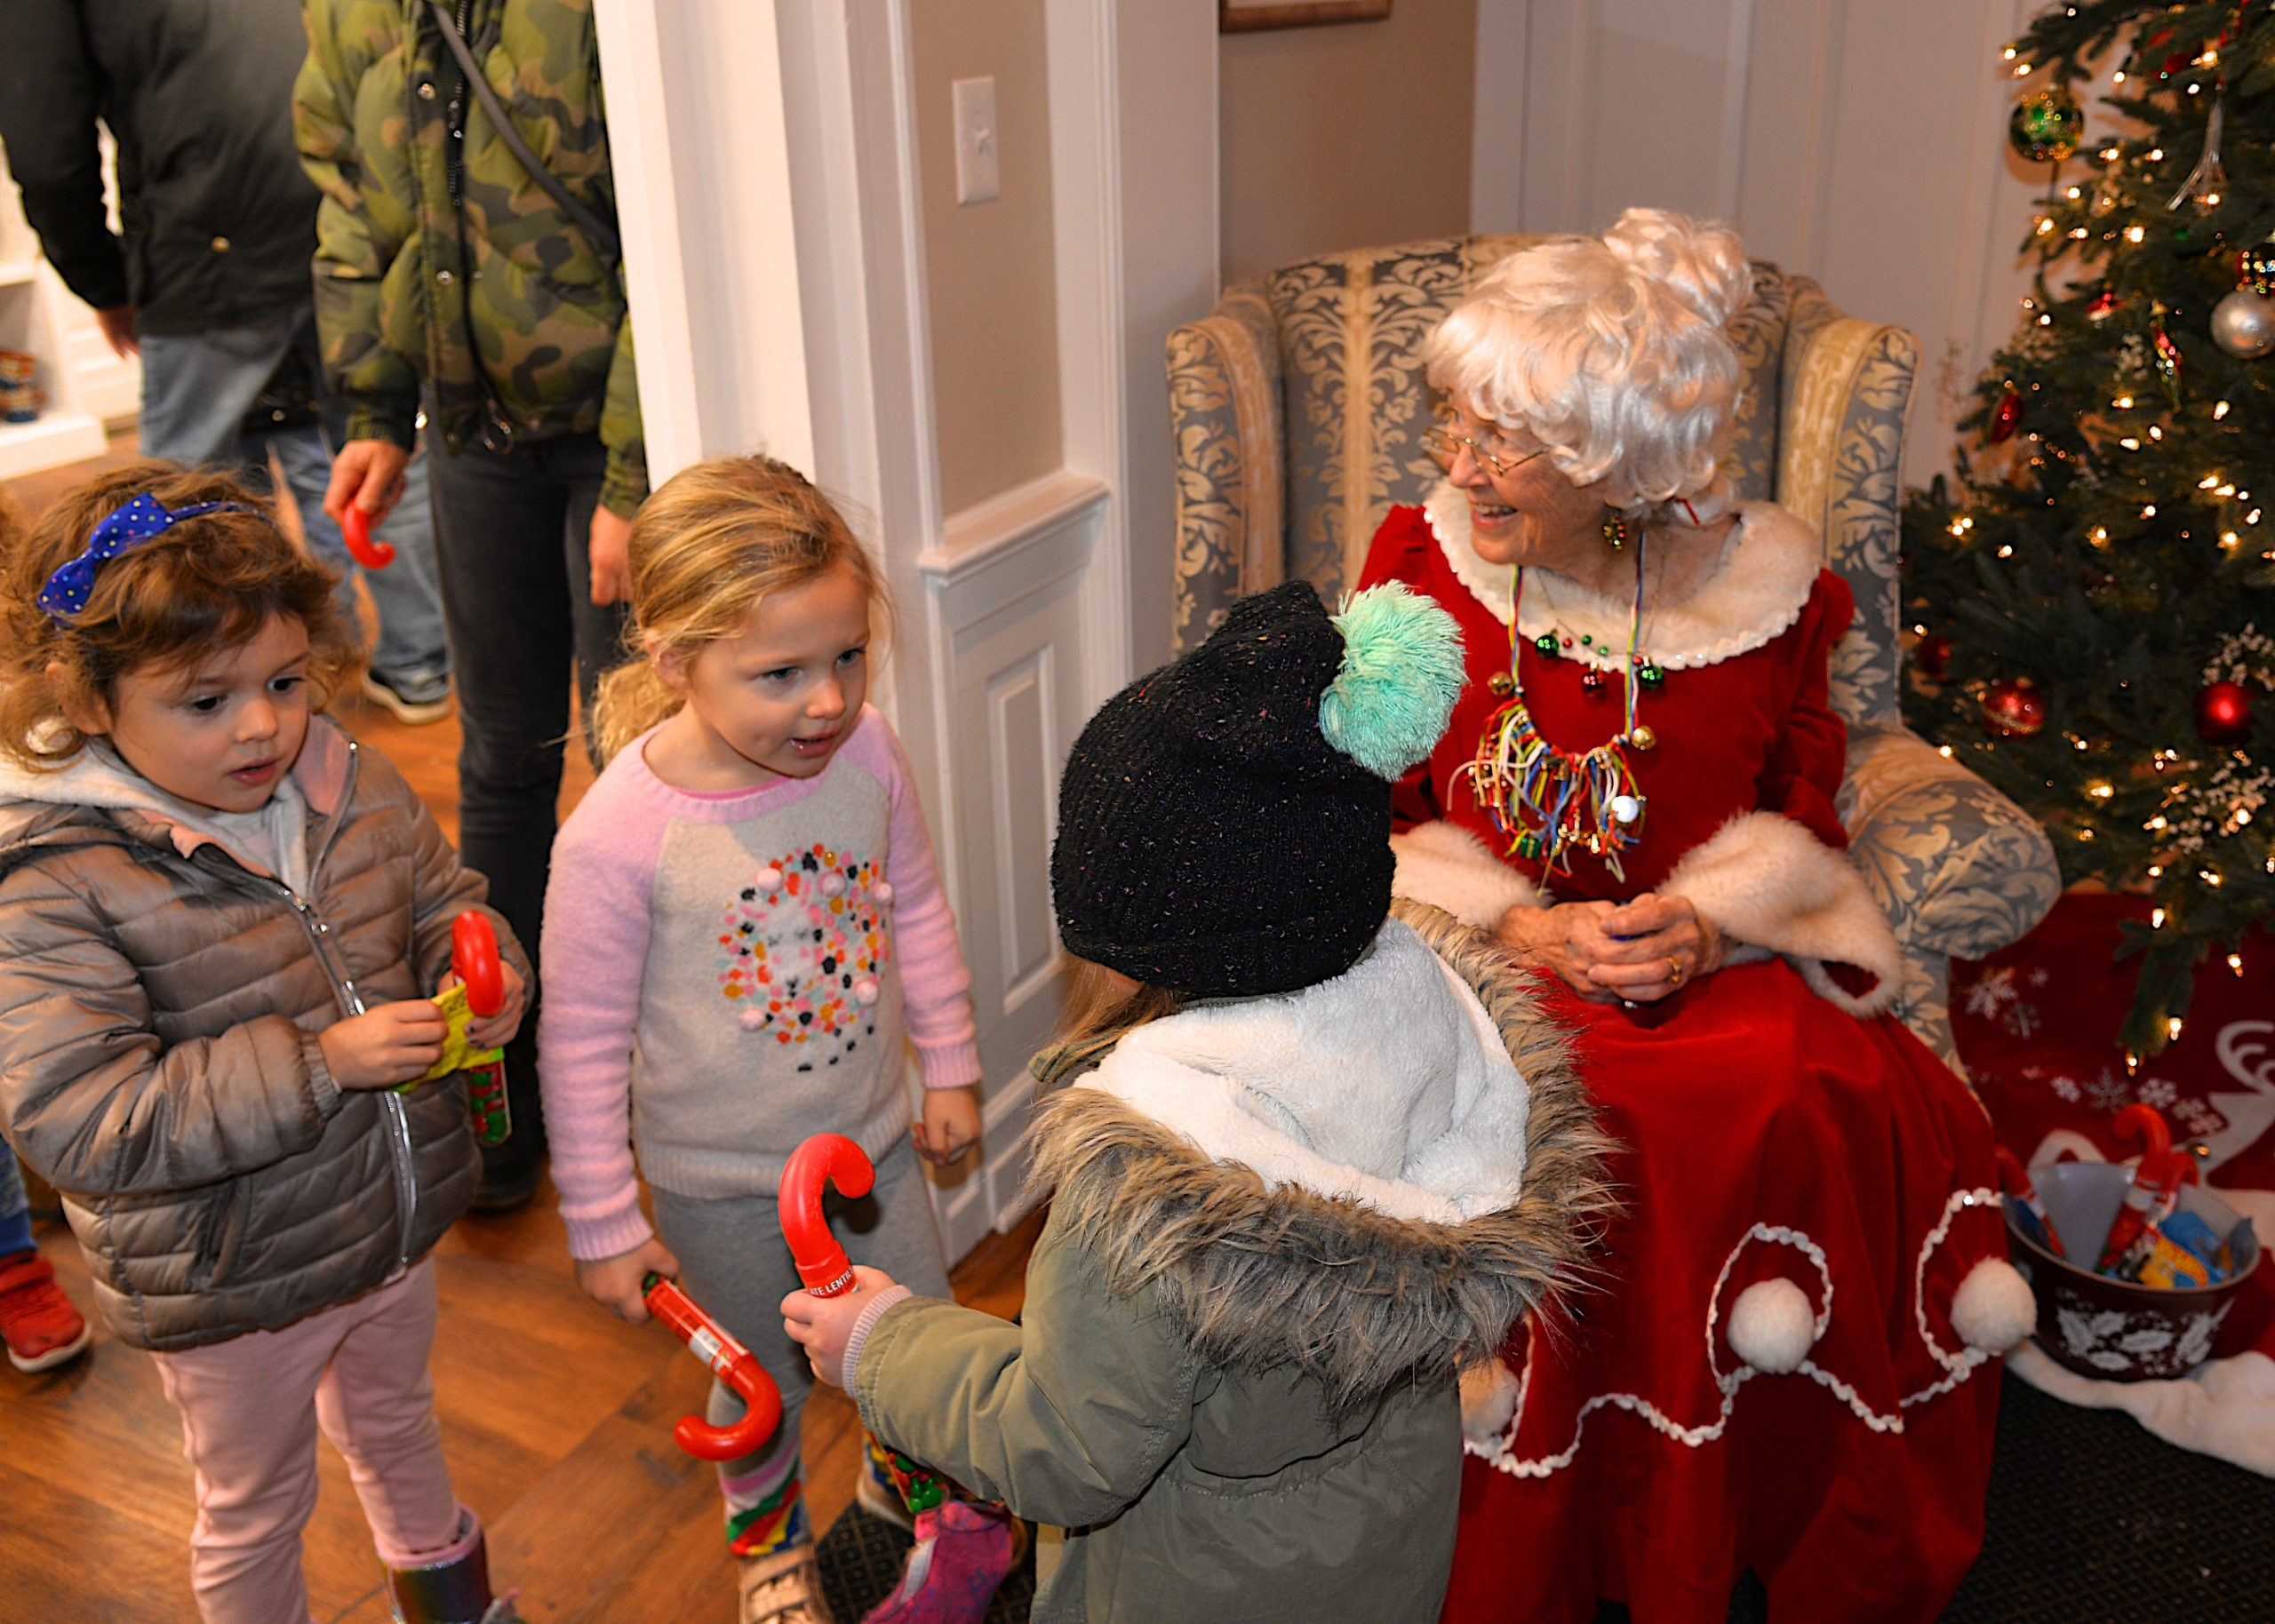 Mrs. Claus was at the East Hampton Ladies Village Improvement Society to greet young visitors during its open house on Saturday. KYRIL BROMLEY